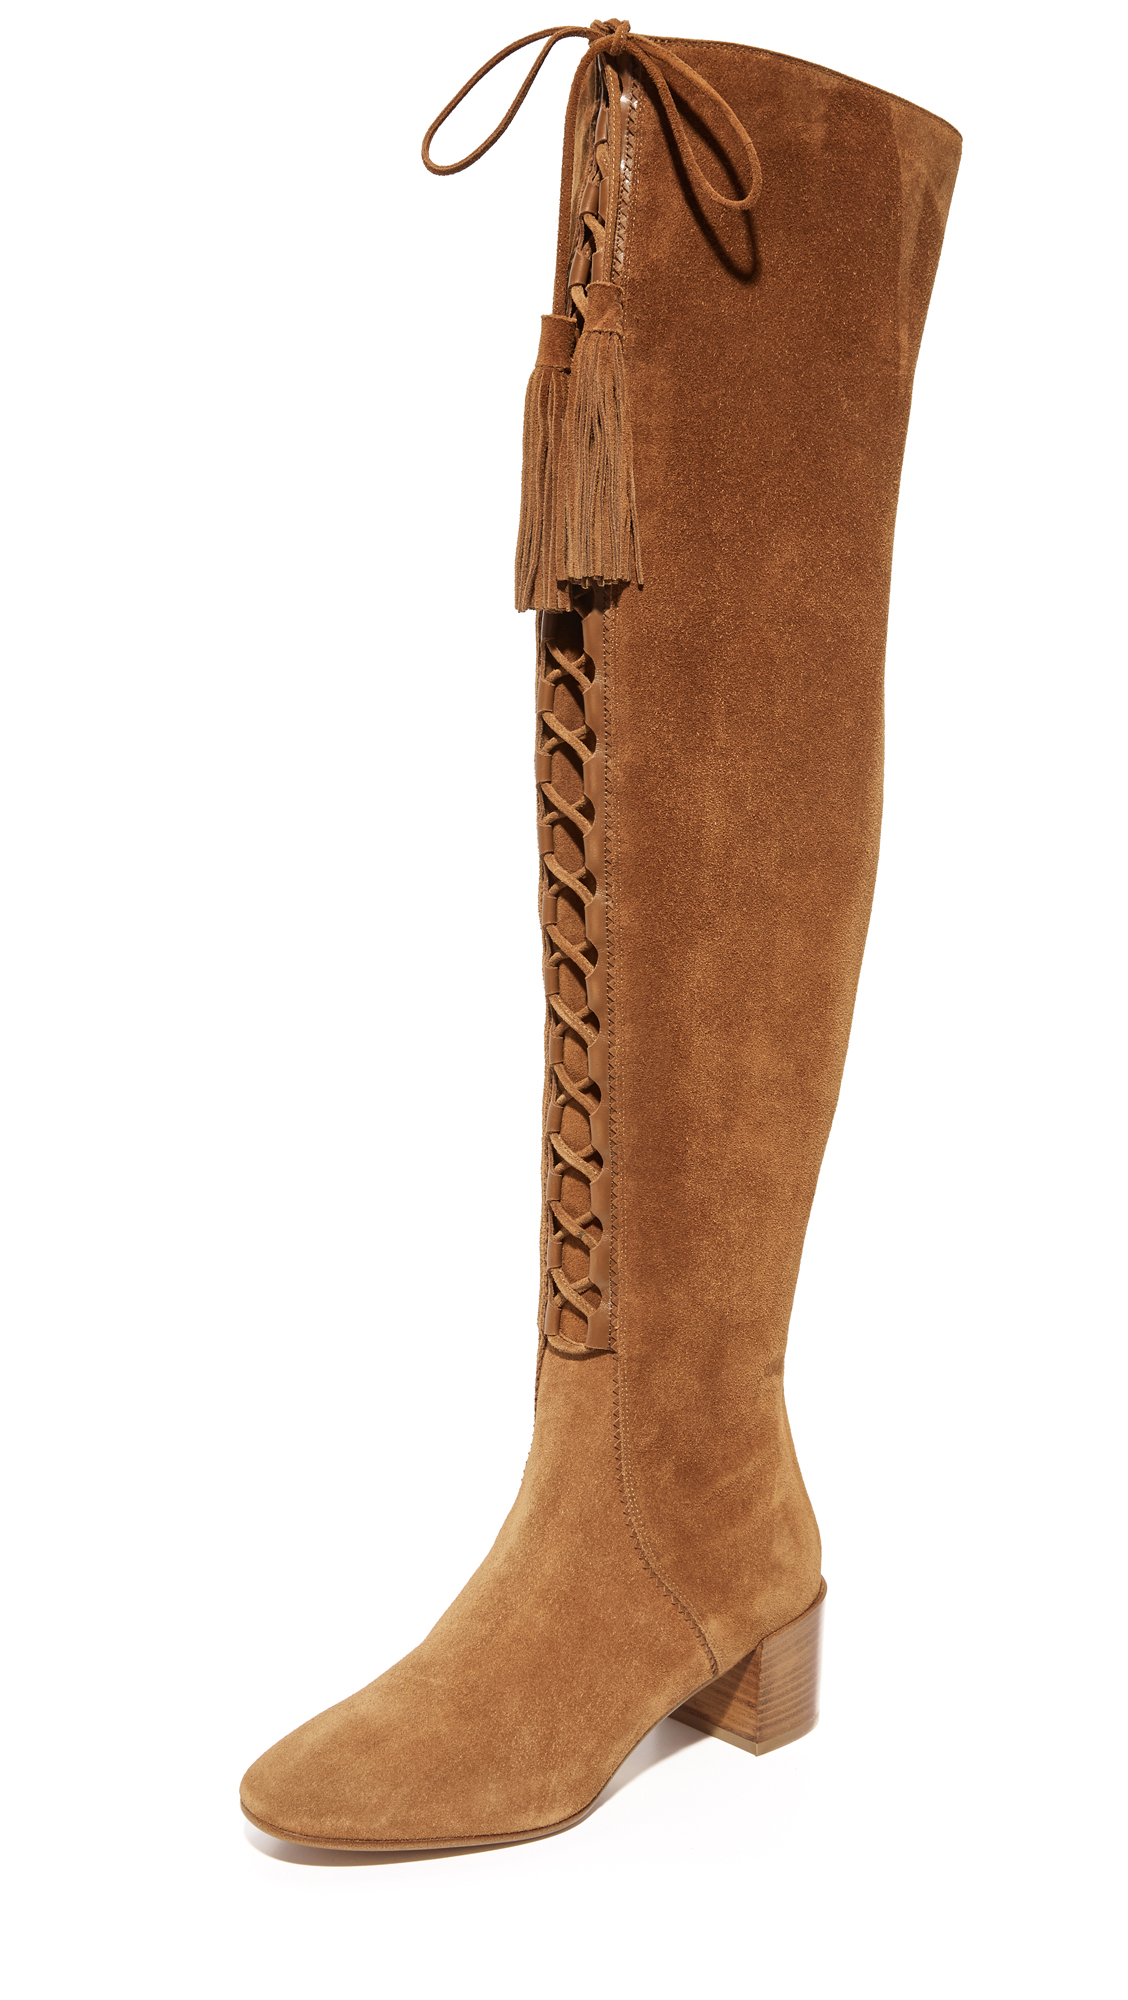 Michael Kors Collection Harris Lace Up Over The Knee Boots - Luggage